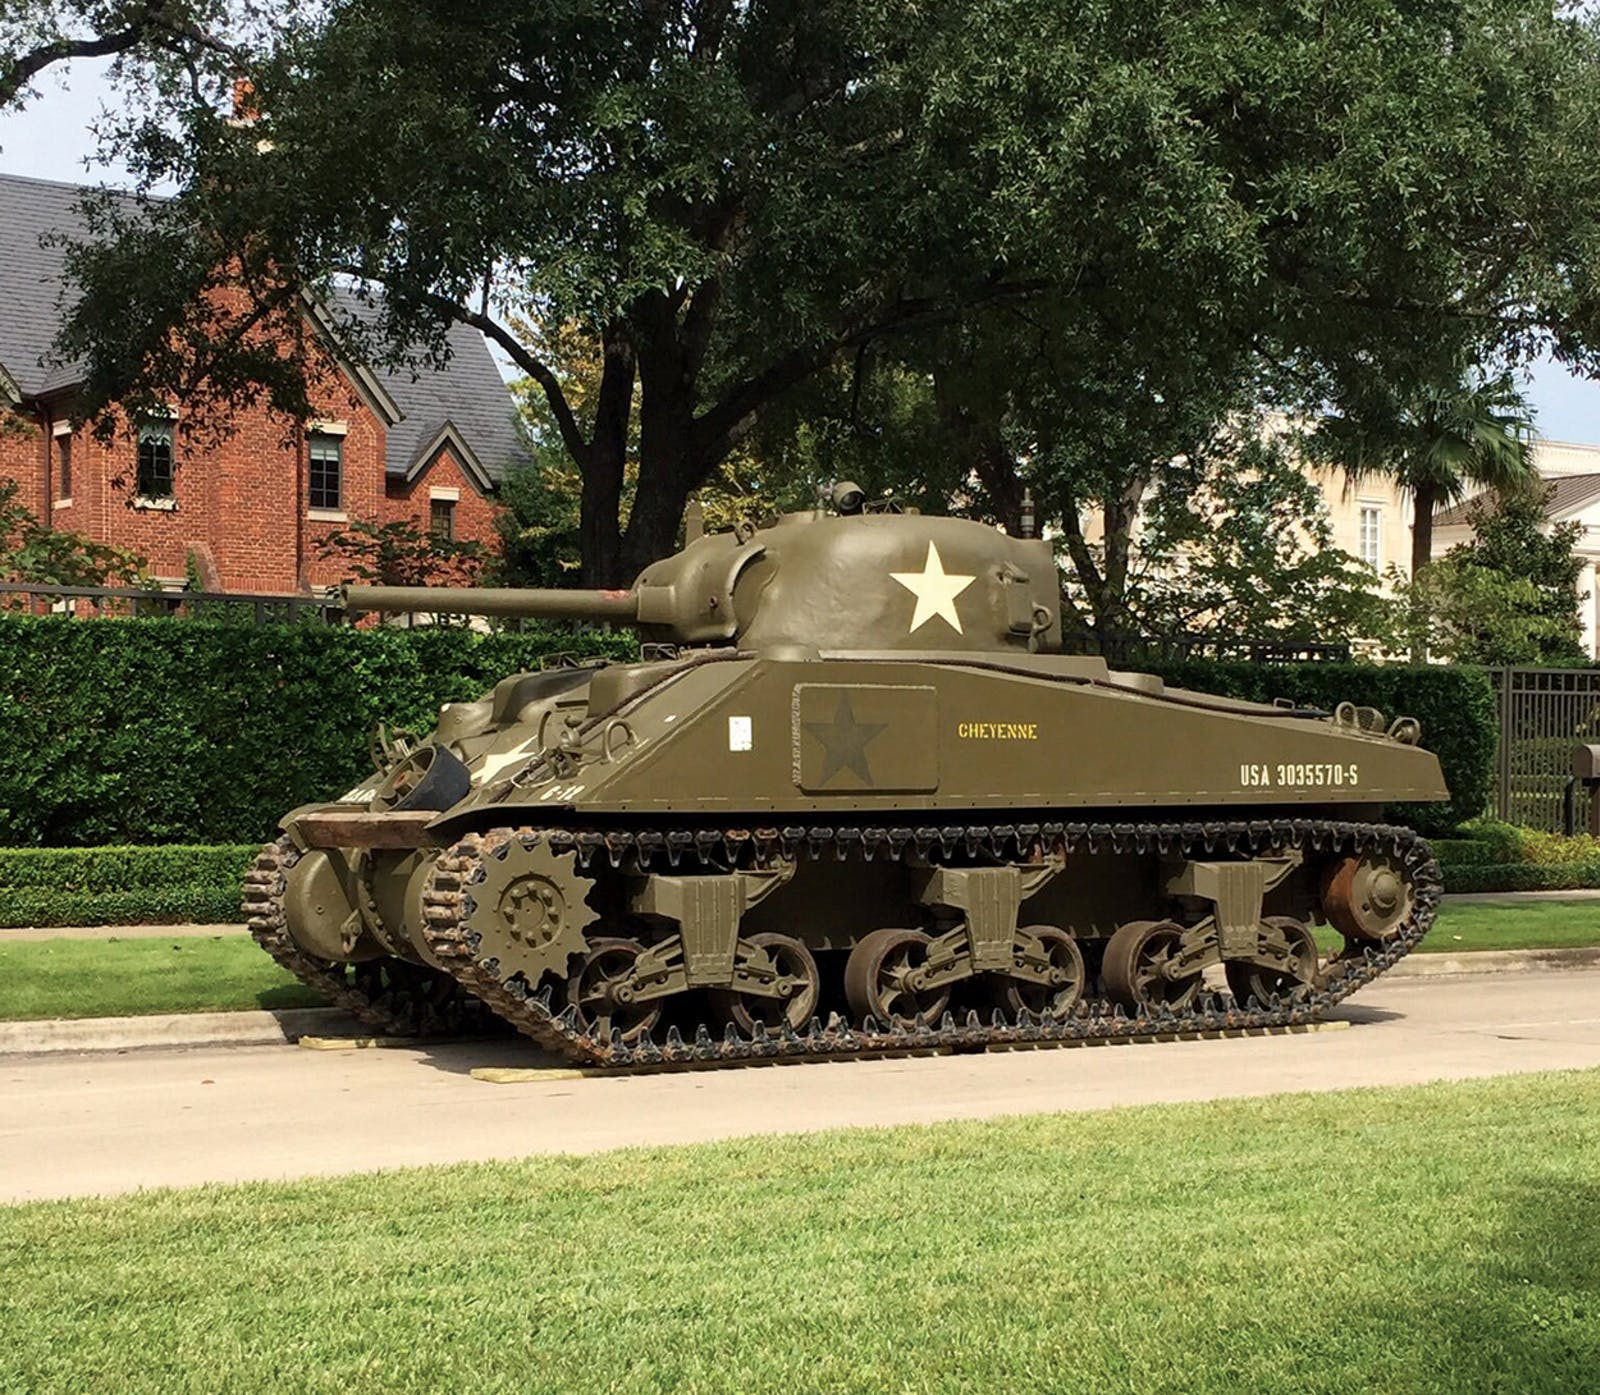 World war era tank at buzbee's home